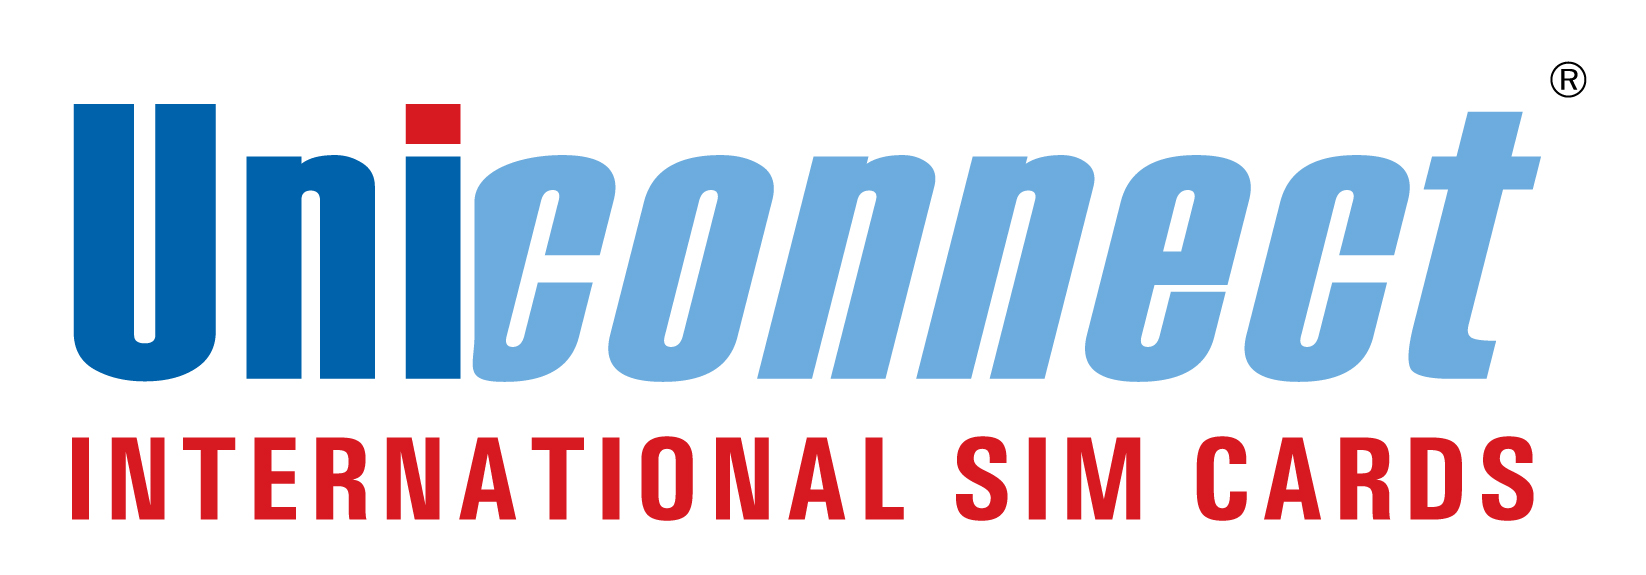 Uniconnect Sim Pvt Ltd Image